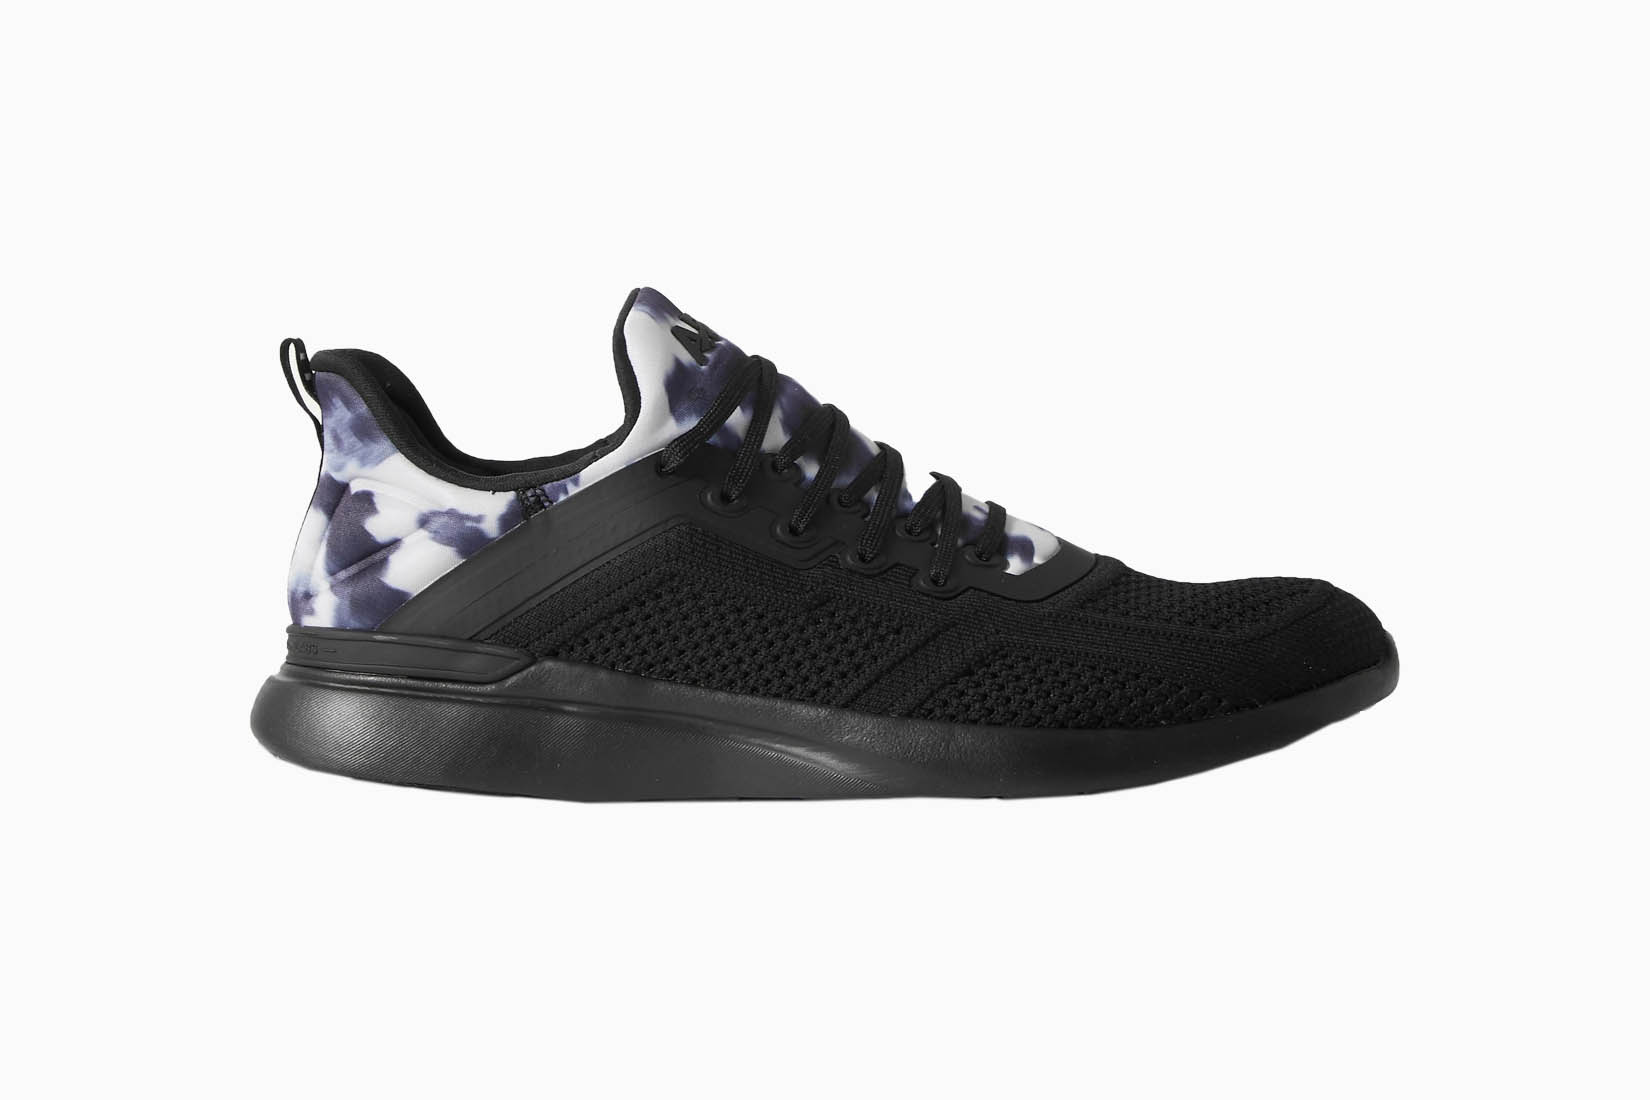 best shoes for standing all day men apl review Luxe Digital